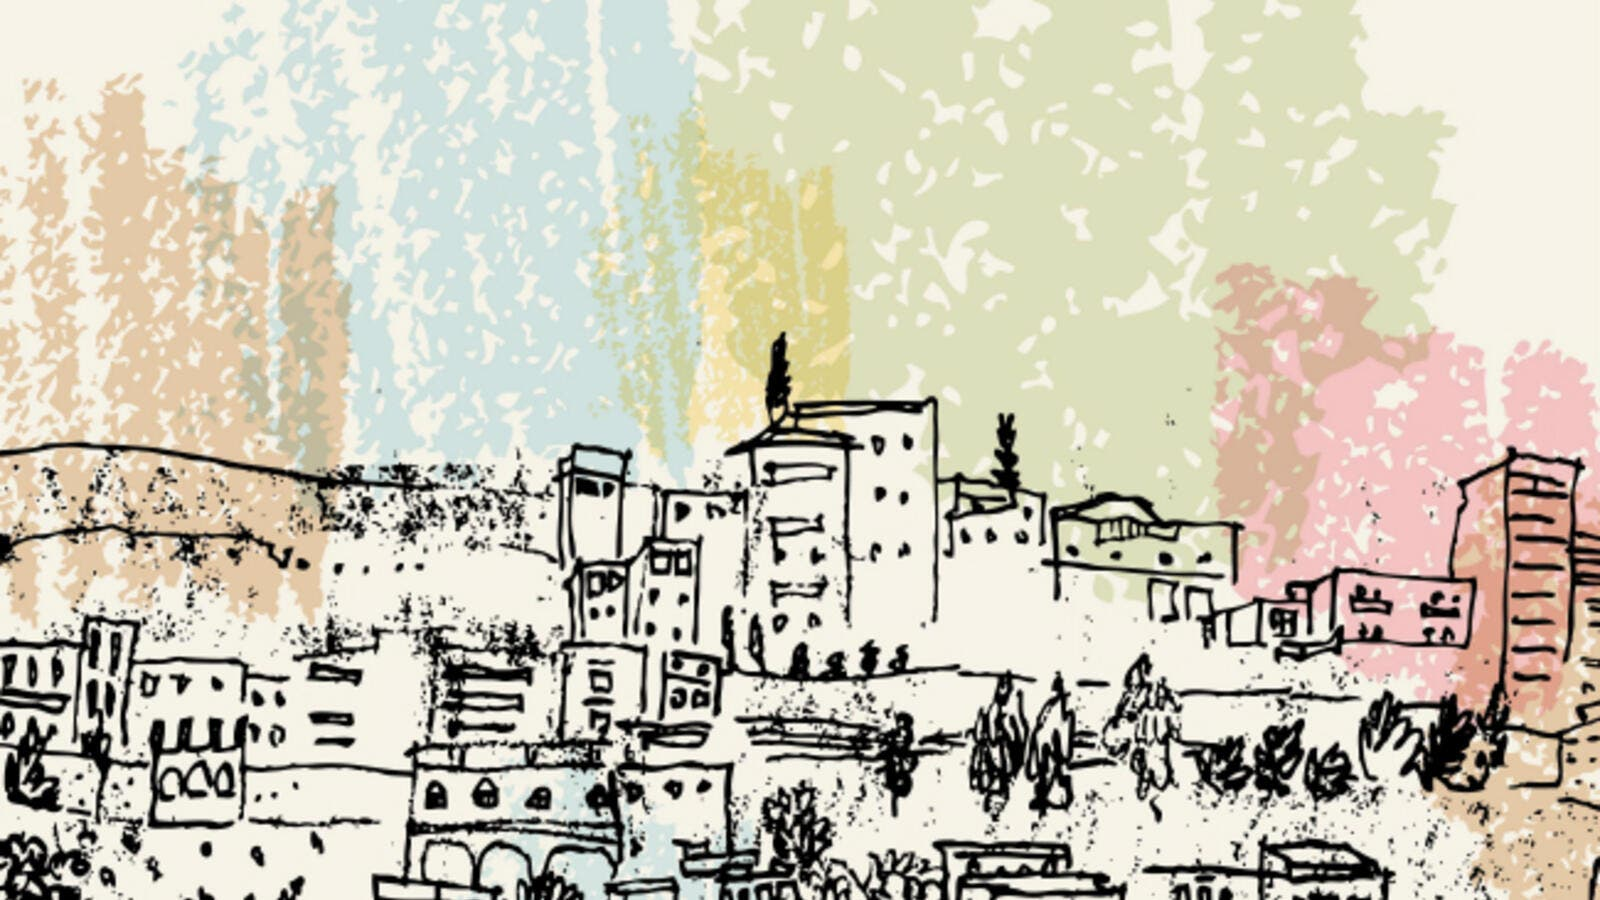 Amman depicted in a drawing. (Babayuka / Shutterstock.com)